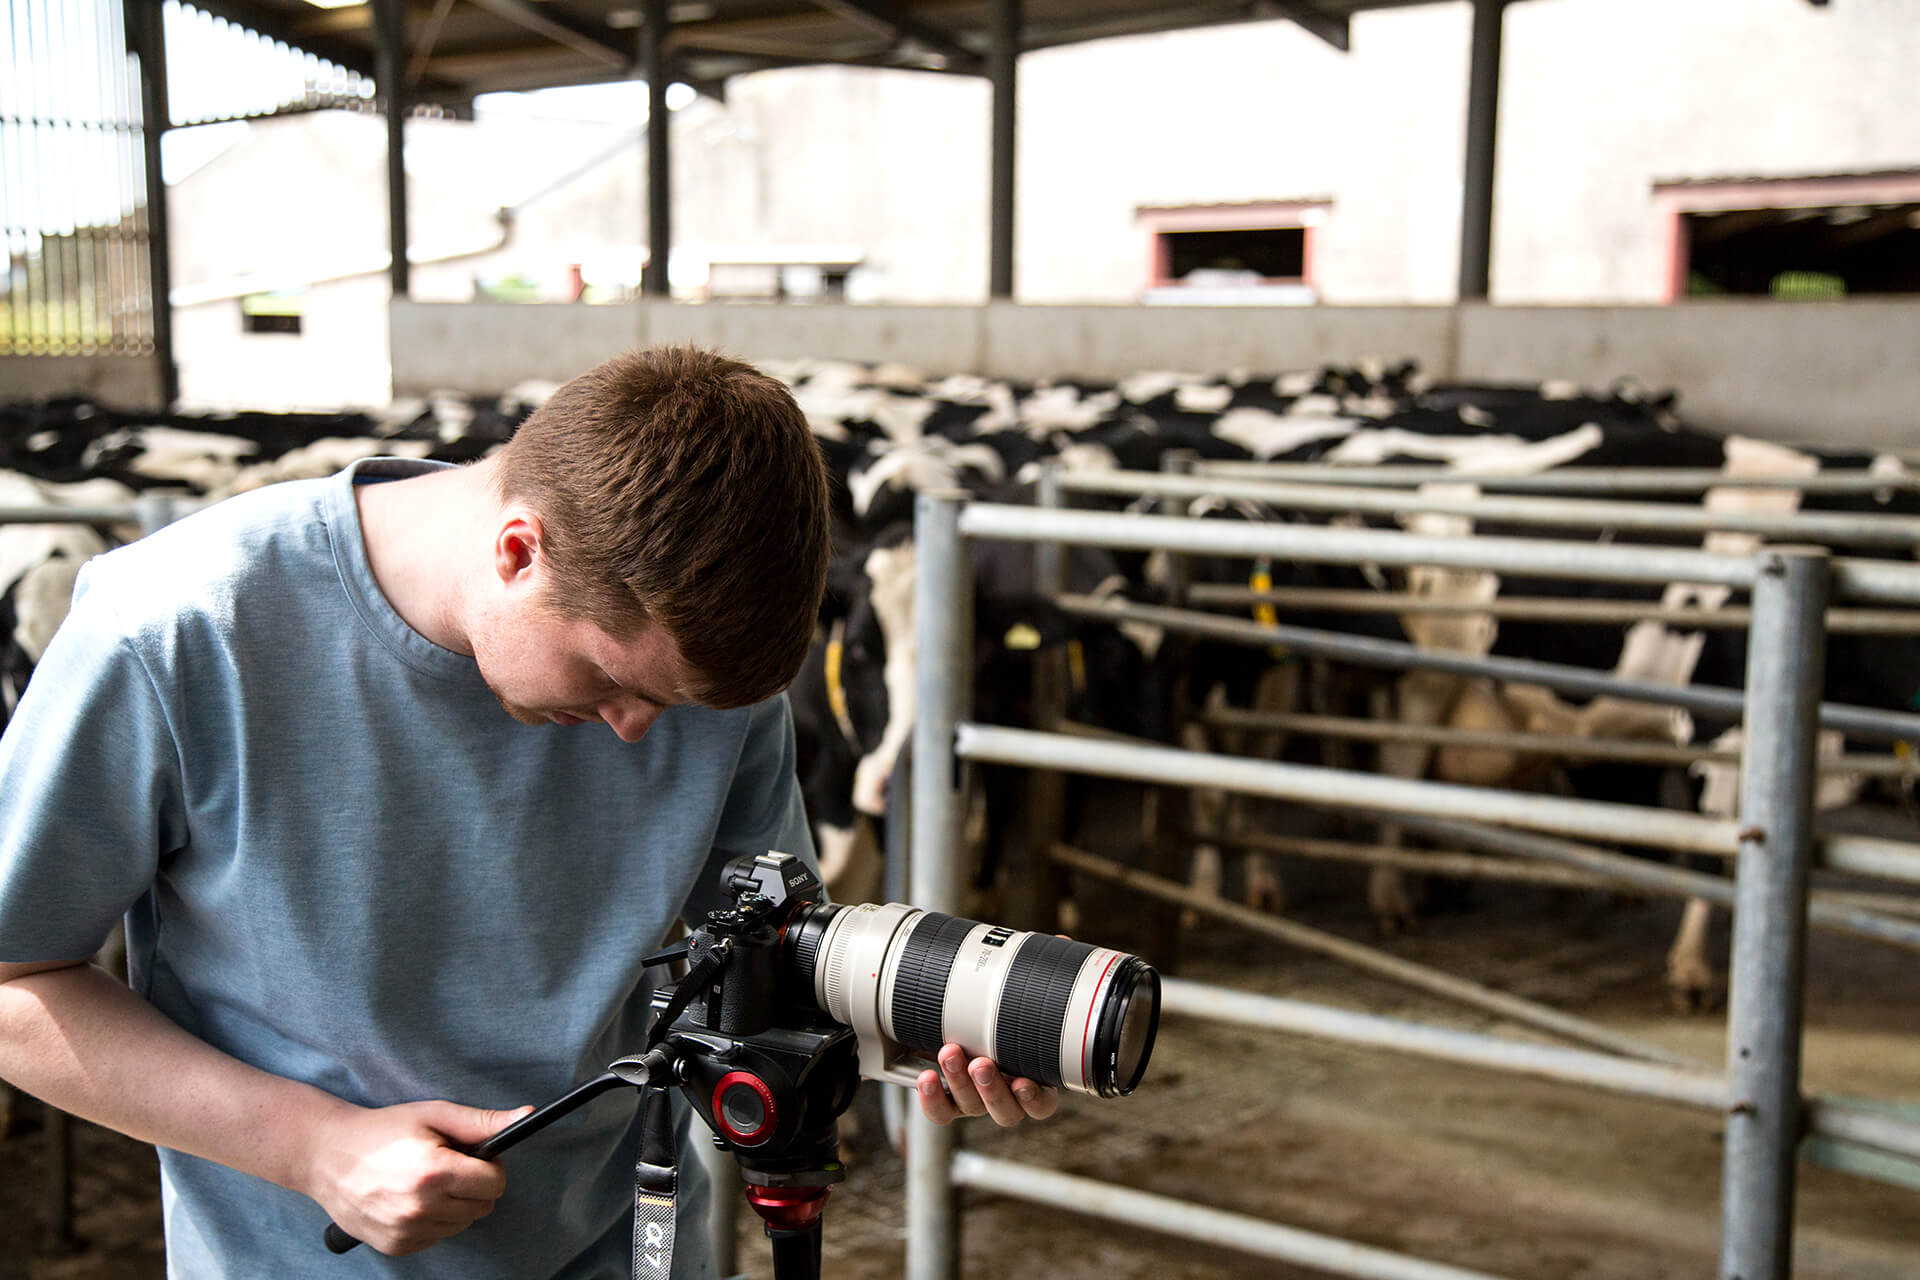 Wyke, Farms, Farm, Cheese, Dairy, Cows, Somerset, England, Britain, Film, Filming, Photography, agency, Sony, A7s, WeAreShuffle